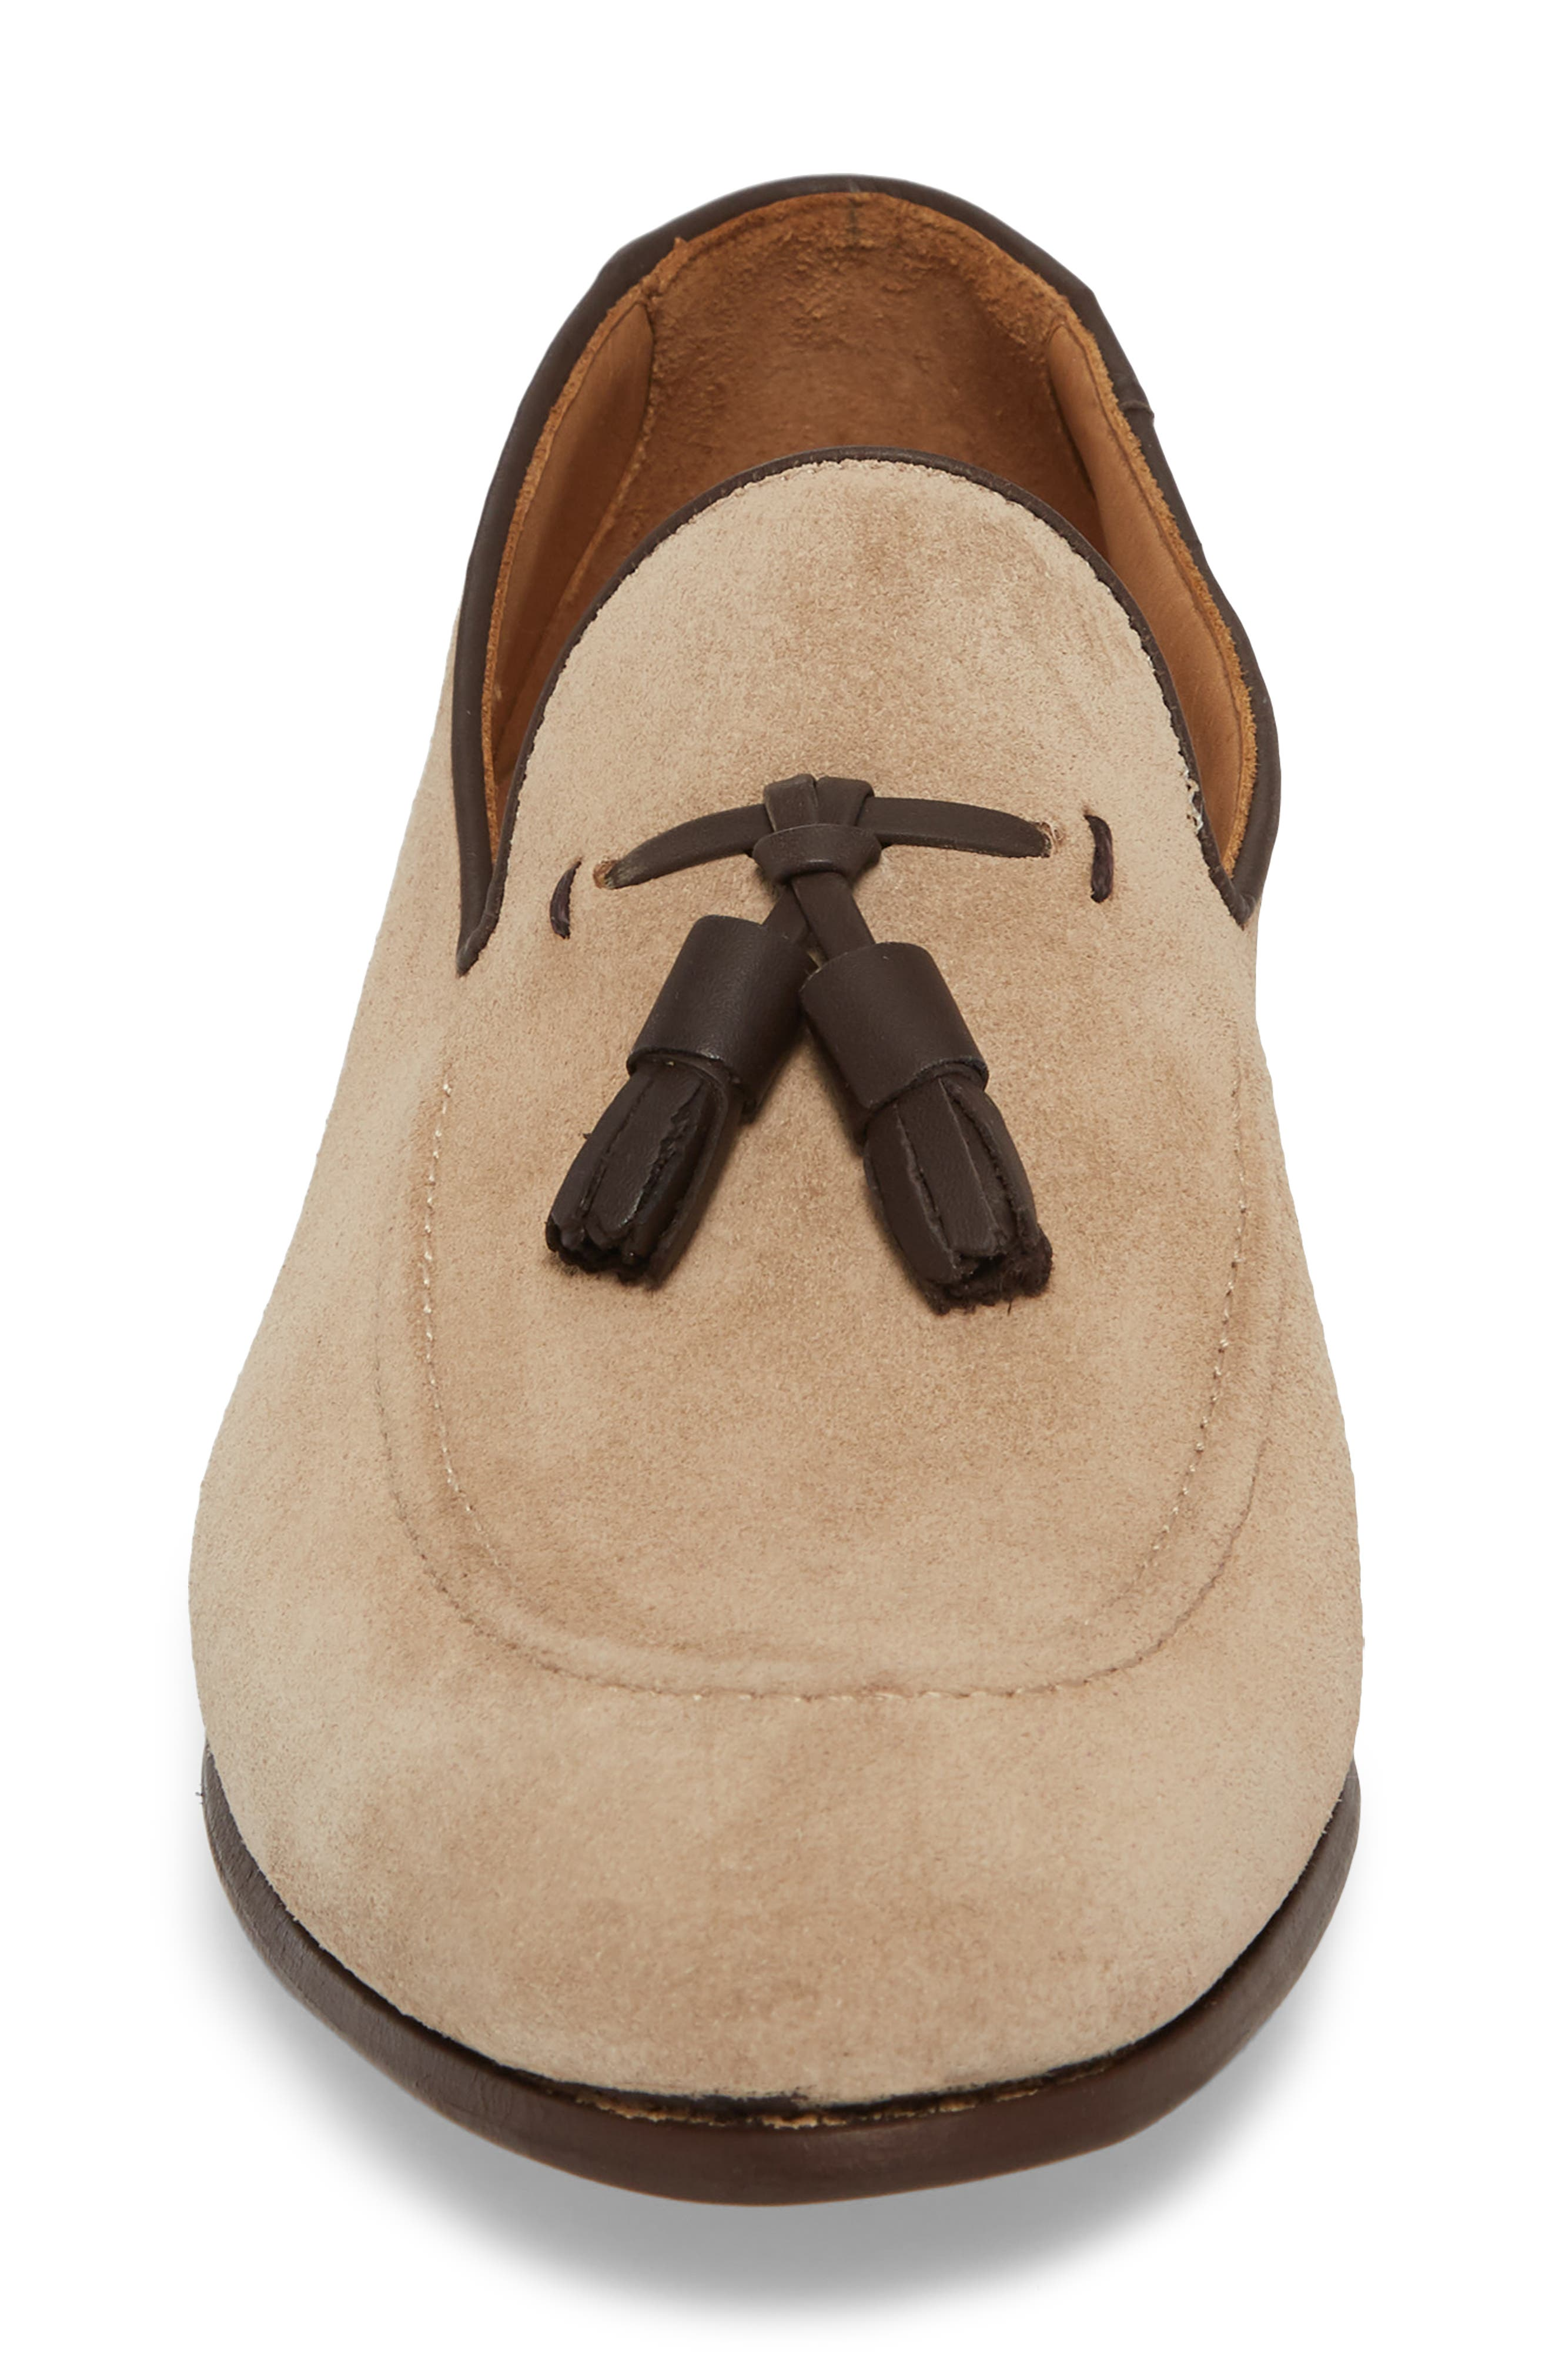 Ario Tassel Loafer,                             Alternate thumbnail 4, color,                             Sand Suede